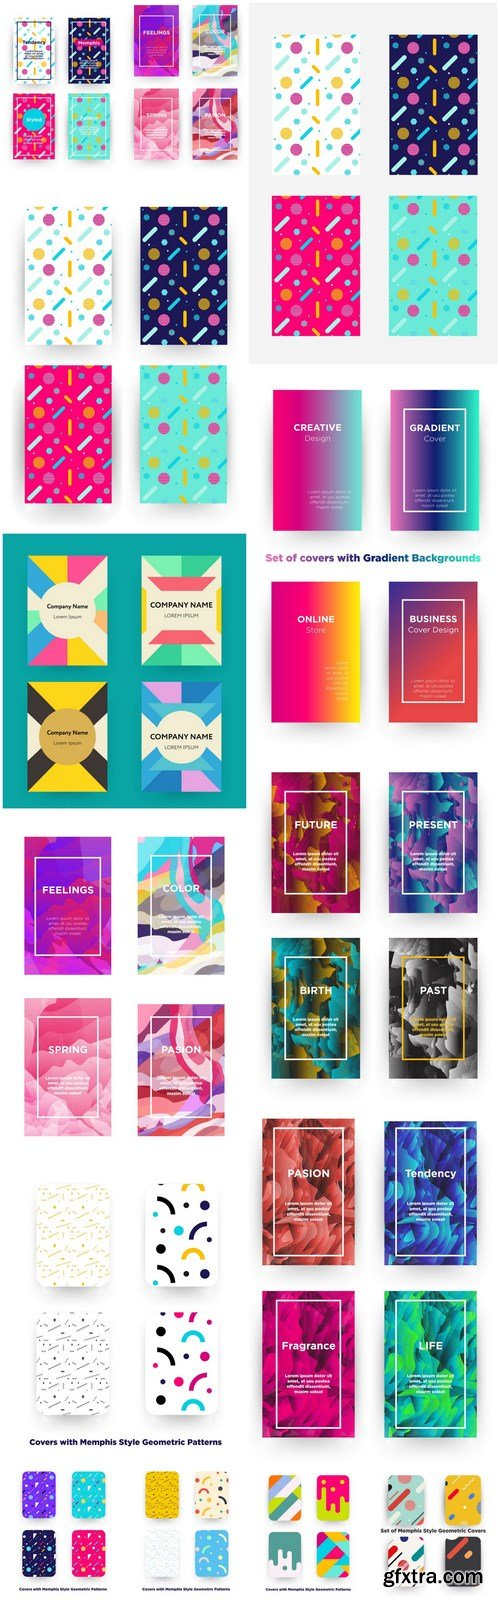 Abstract Cover Template Design - 14 Vector